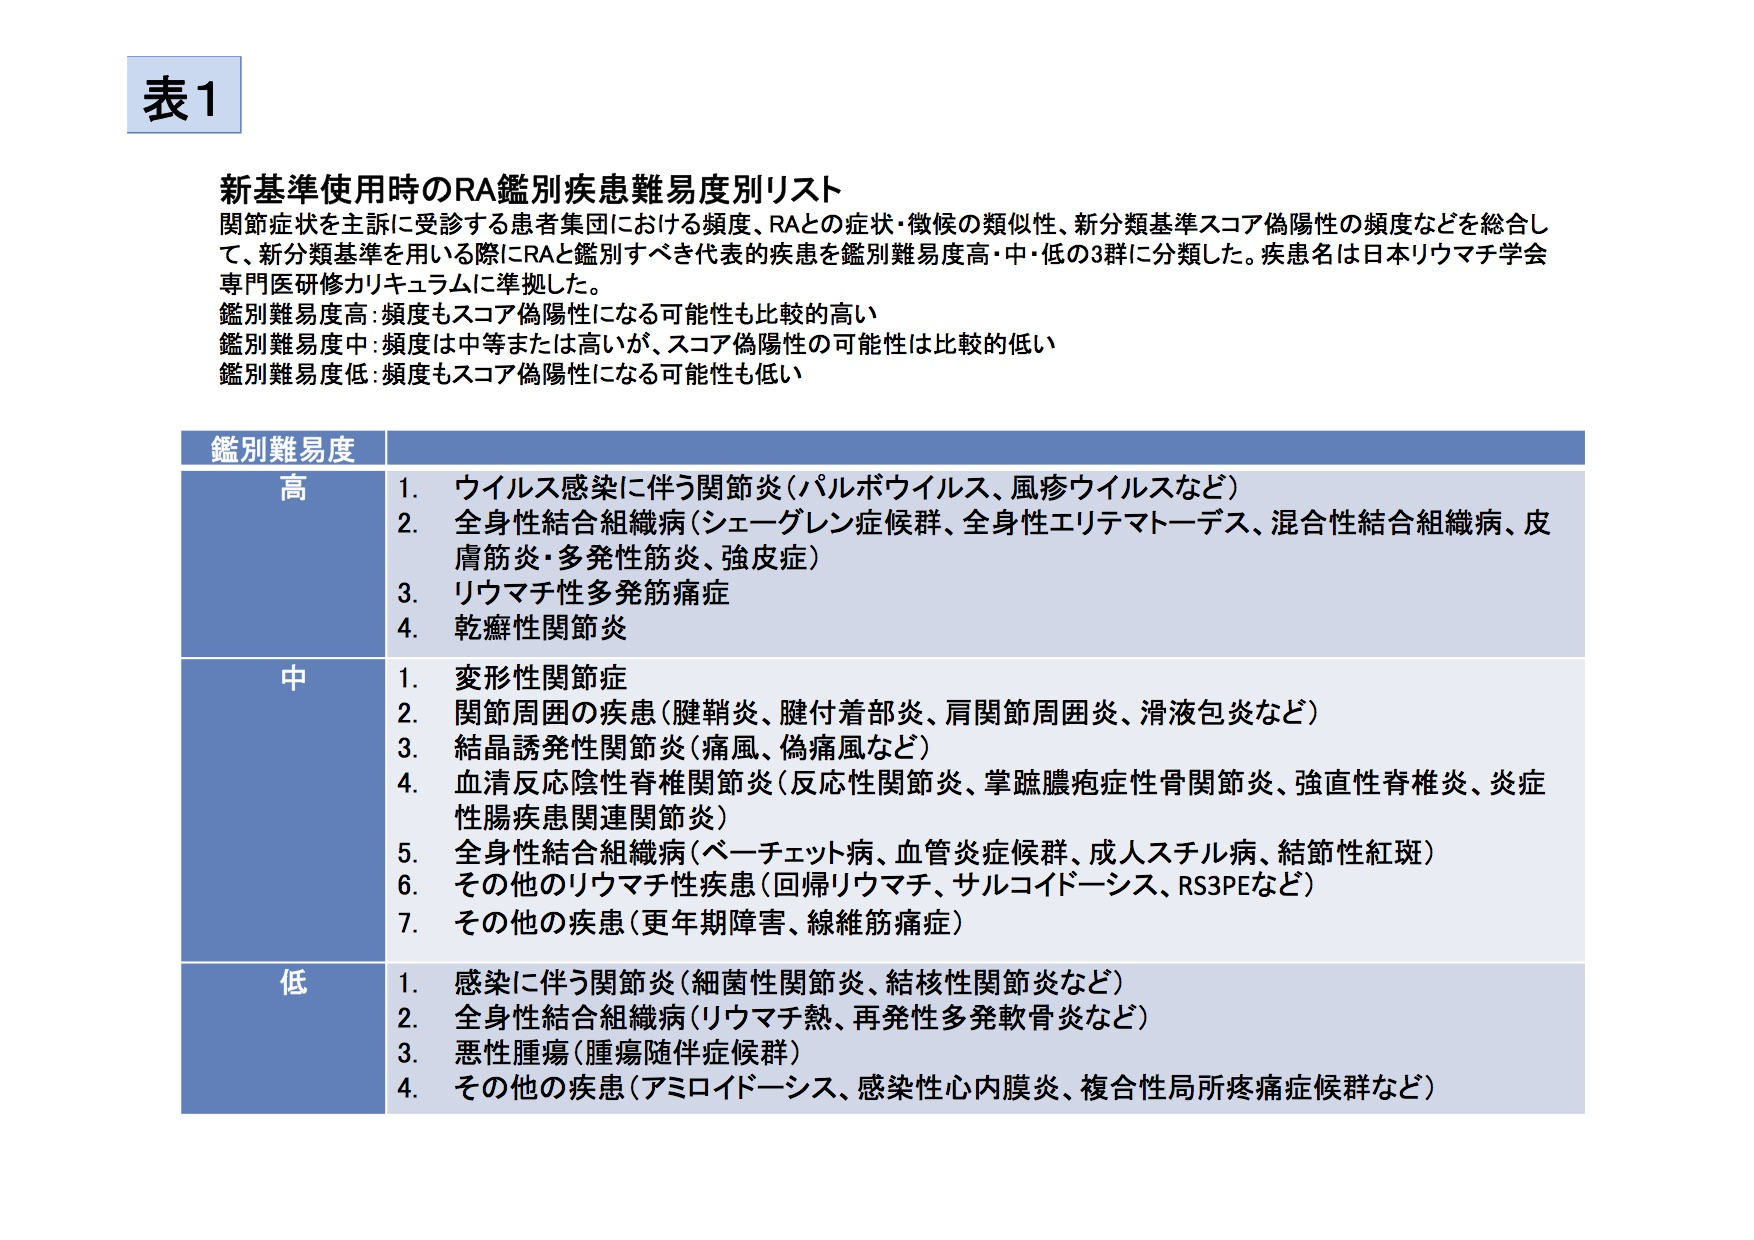 120115_table1 のコピー